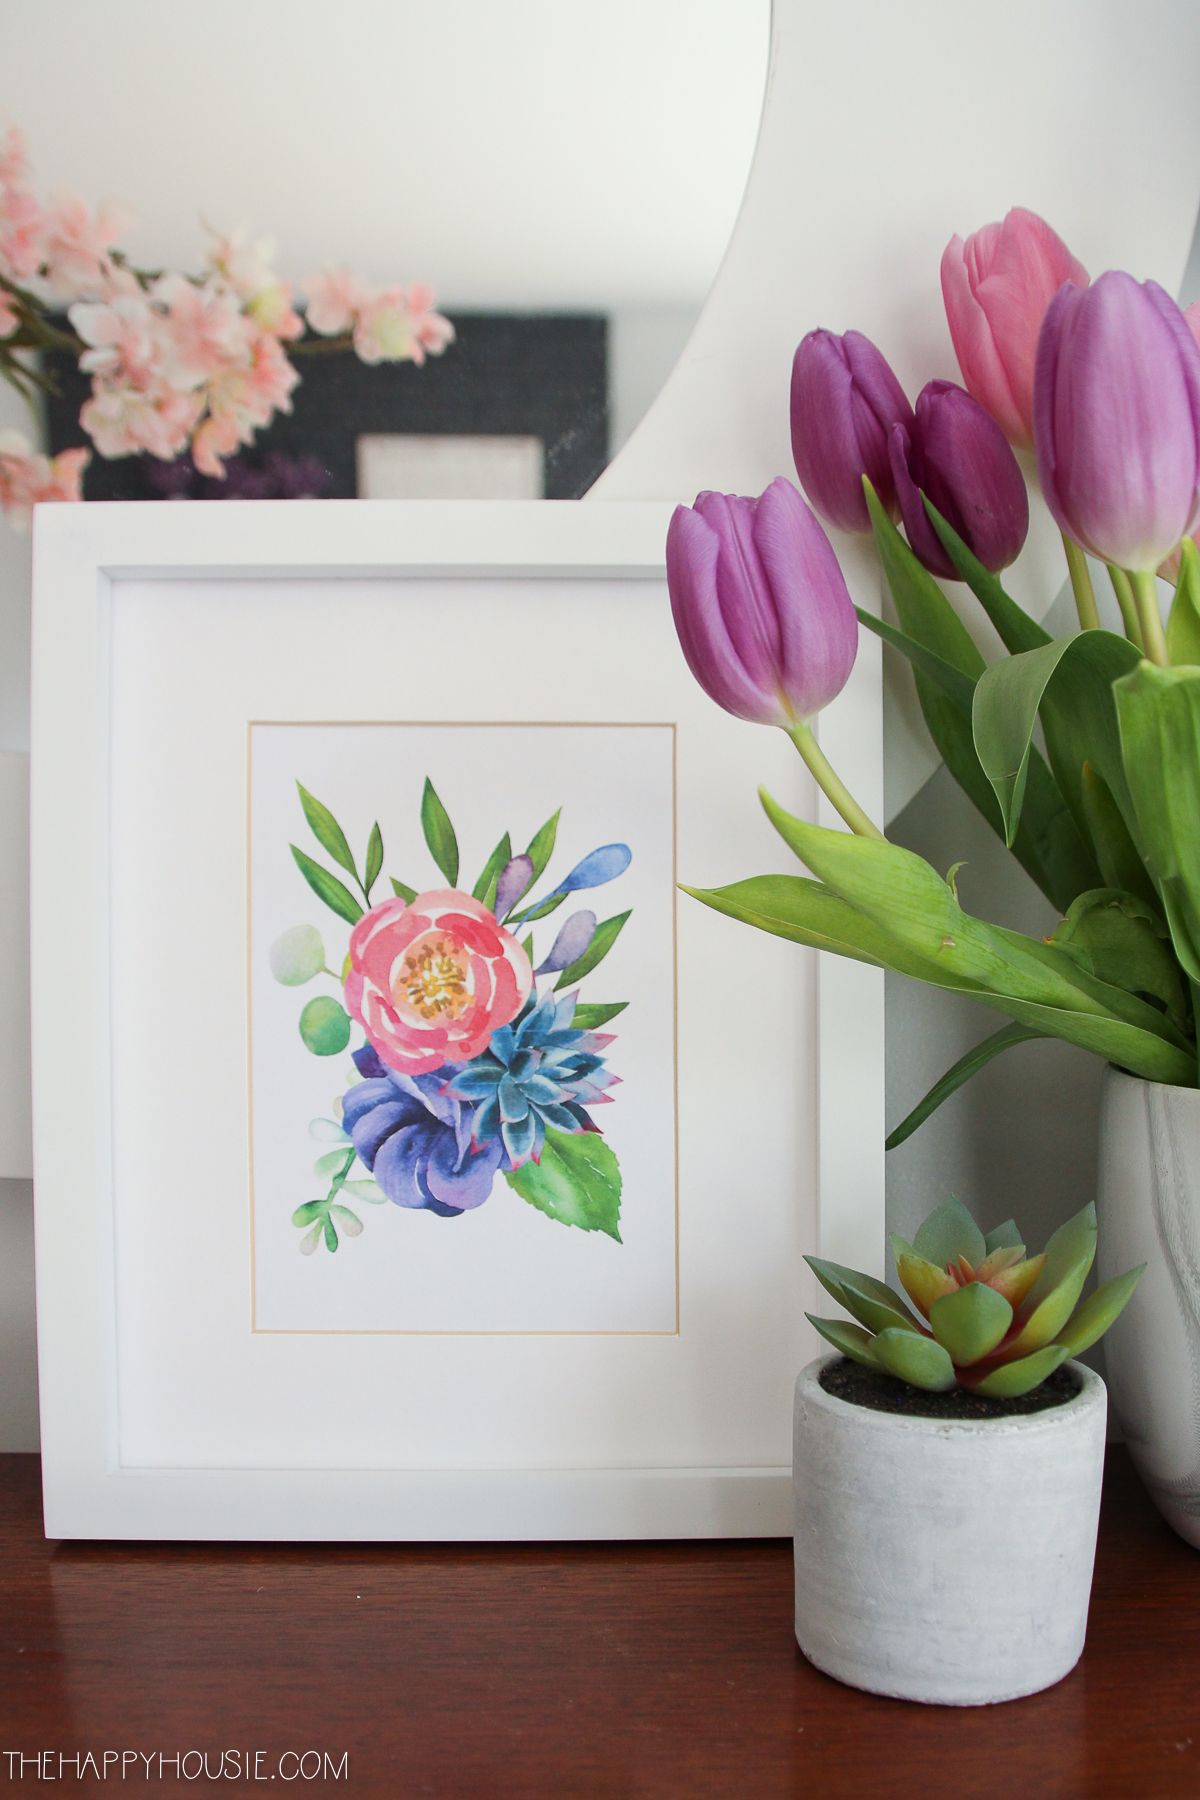 free-printable-spring-watercolour-floral-art-series-of-four-prints-at-the-happy-housie-3.jpg